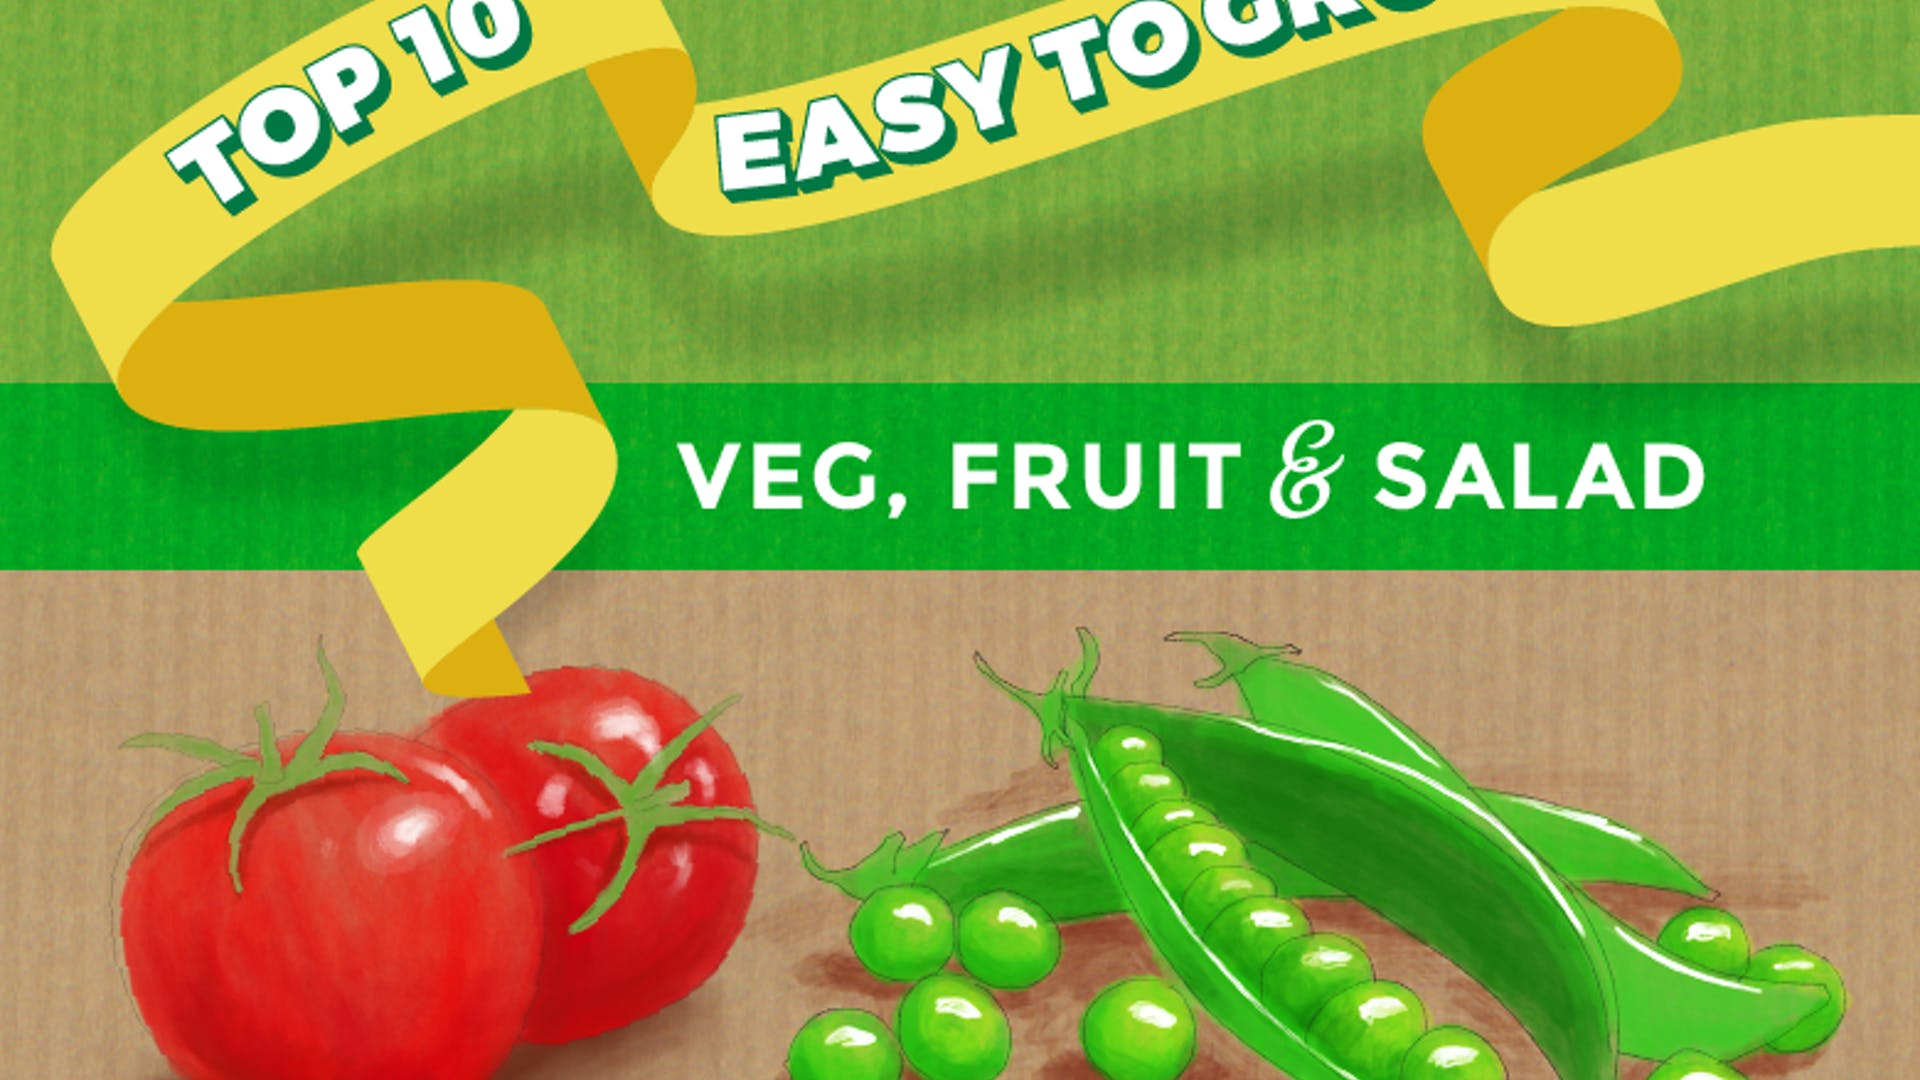 Thompson morgan 10 easy veg infographic header